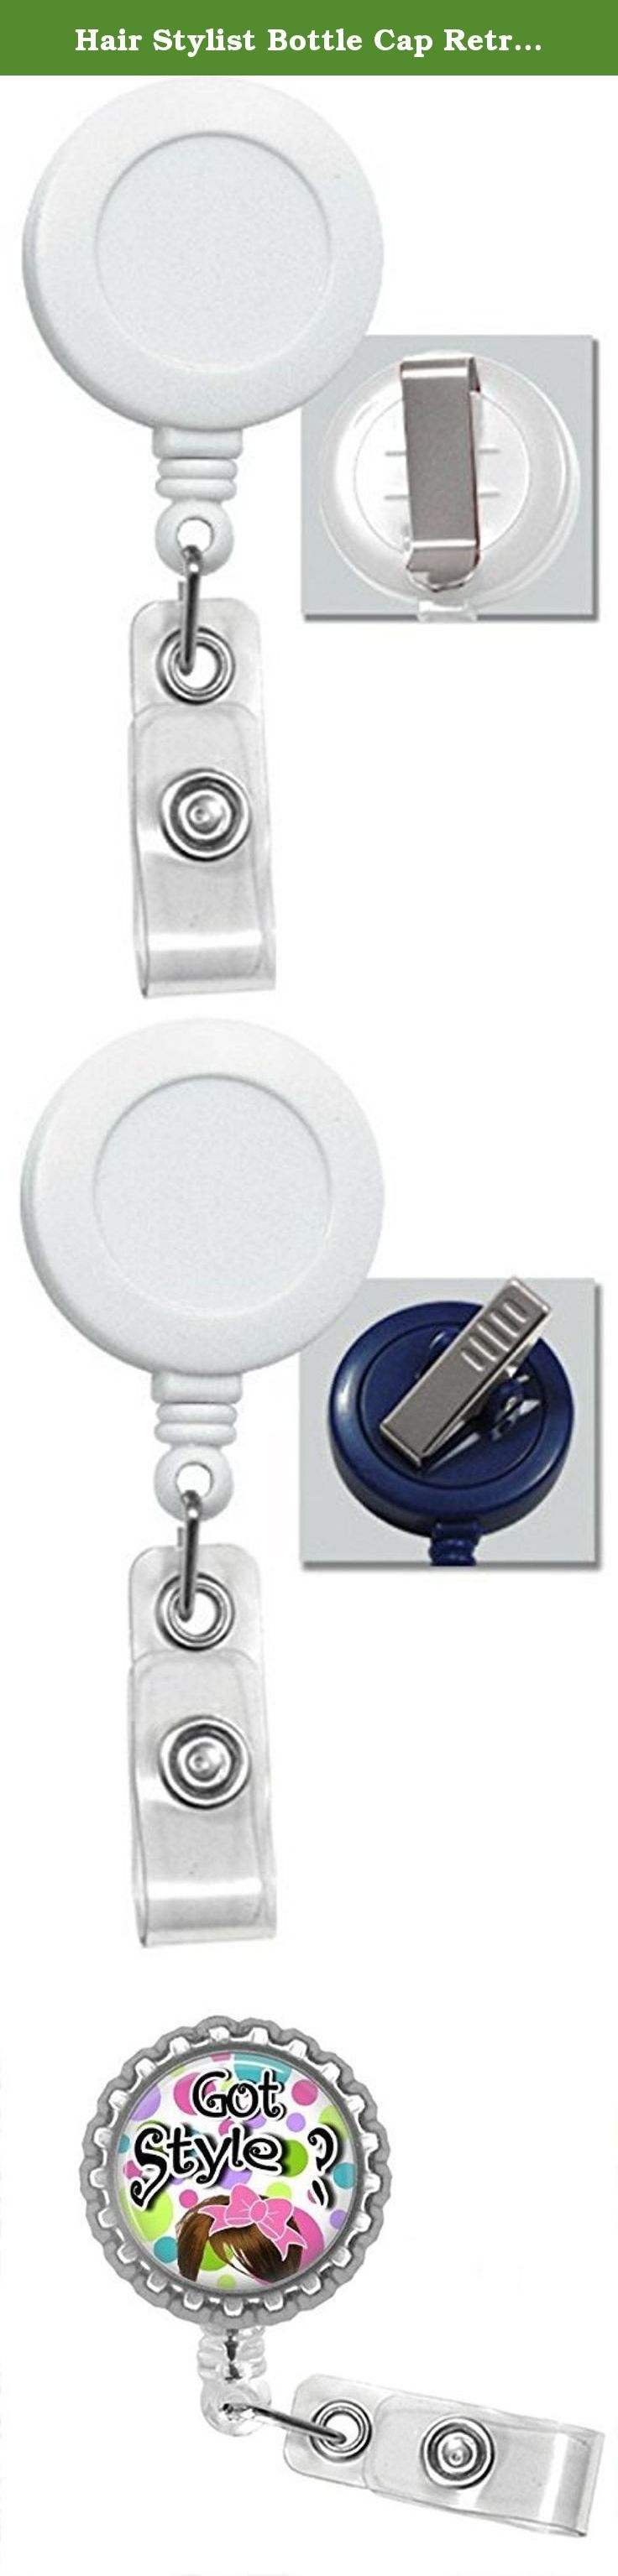 Hair Stylist Bottle Cap Retractable Badge ID Holder. Hair stylist bottlecap badge reel is a great item to hang your work or school.Id's Badge is 1.25 in diameter. The badge also is a Retractable badge with your choice of either a clip or a swivel alligator clip Pictures 2 is a slide clip picture 3 is an alligator clip you can use it to hang off your shirt pocket or your shirt sleeve or pants pocket. The retractable cord is 24 inches Badge reel says Got Style on it. The color of the badge...